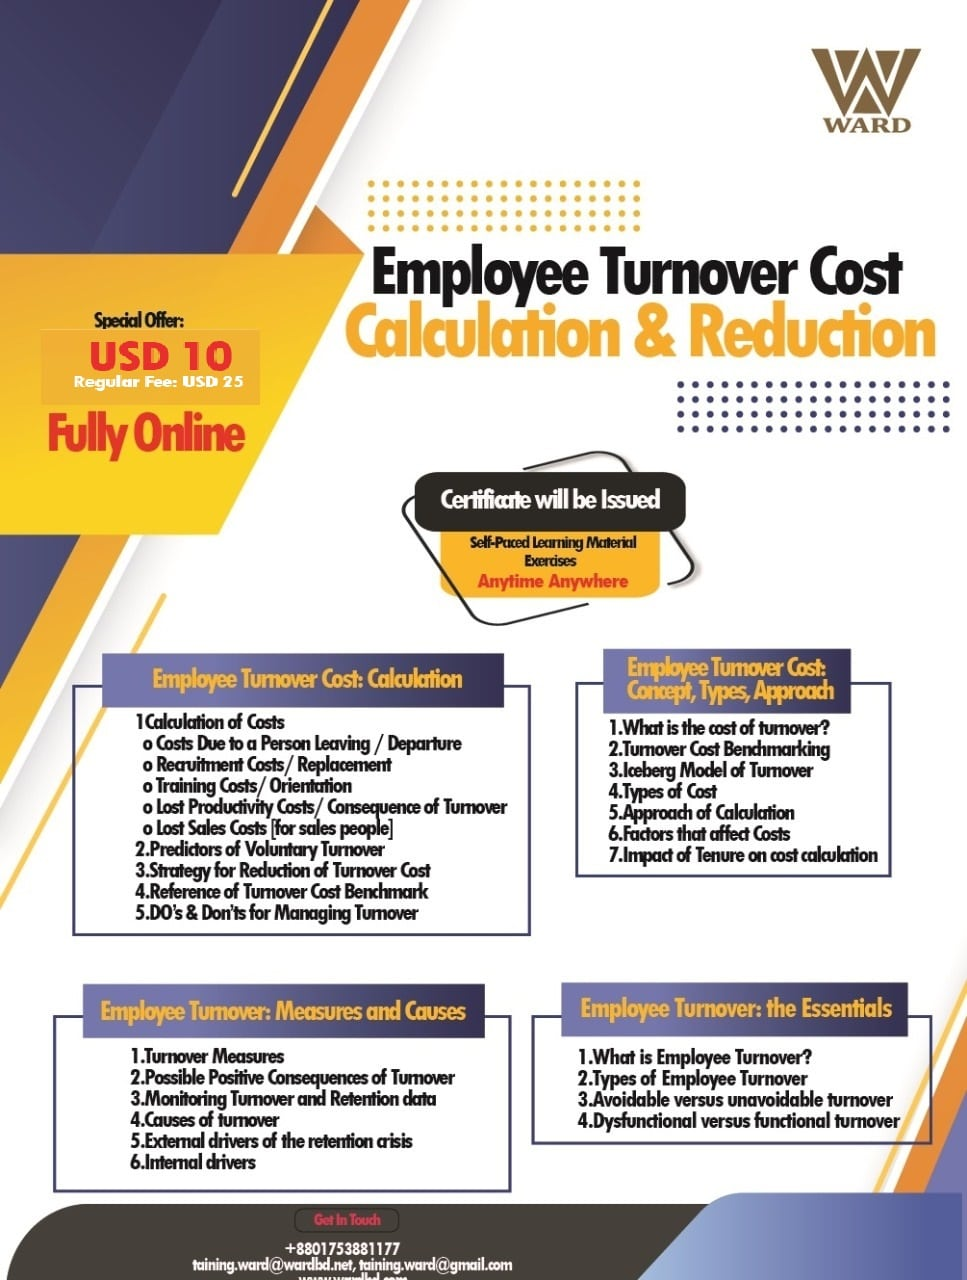 Employee Turnover Cost: Calculation & Reduction